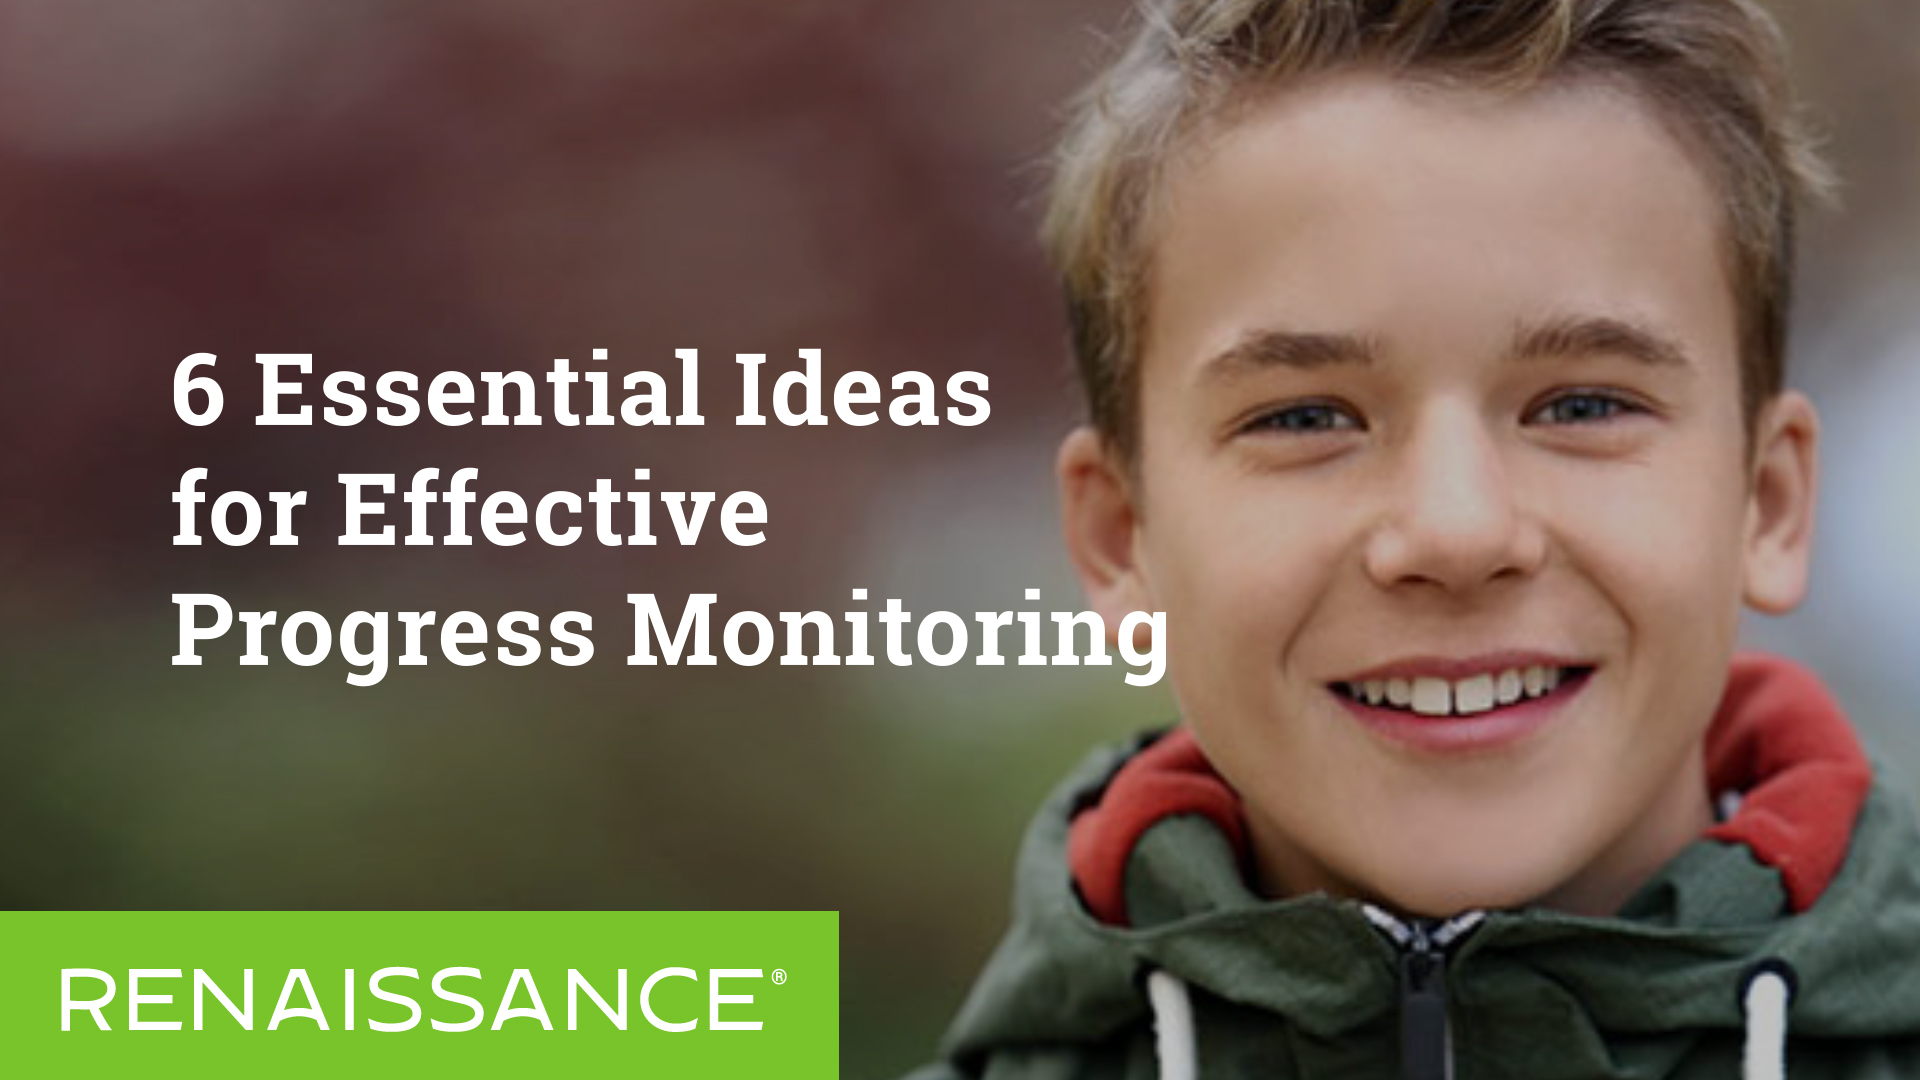 6 Essential Ideas for Effective Progress Monitoring